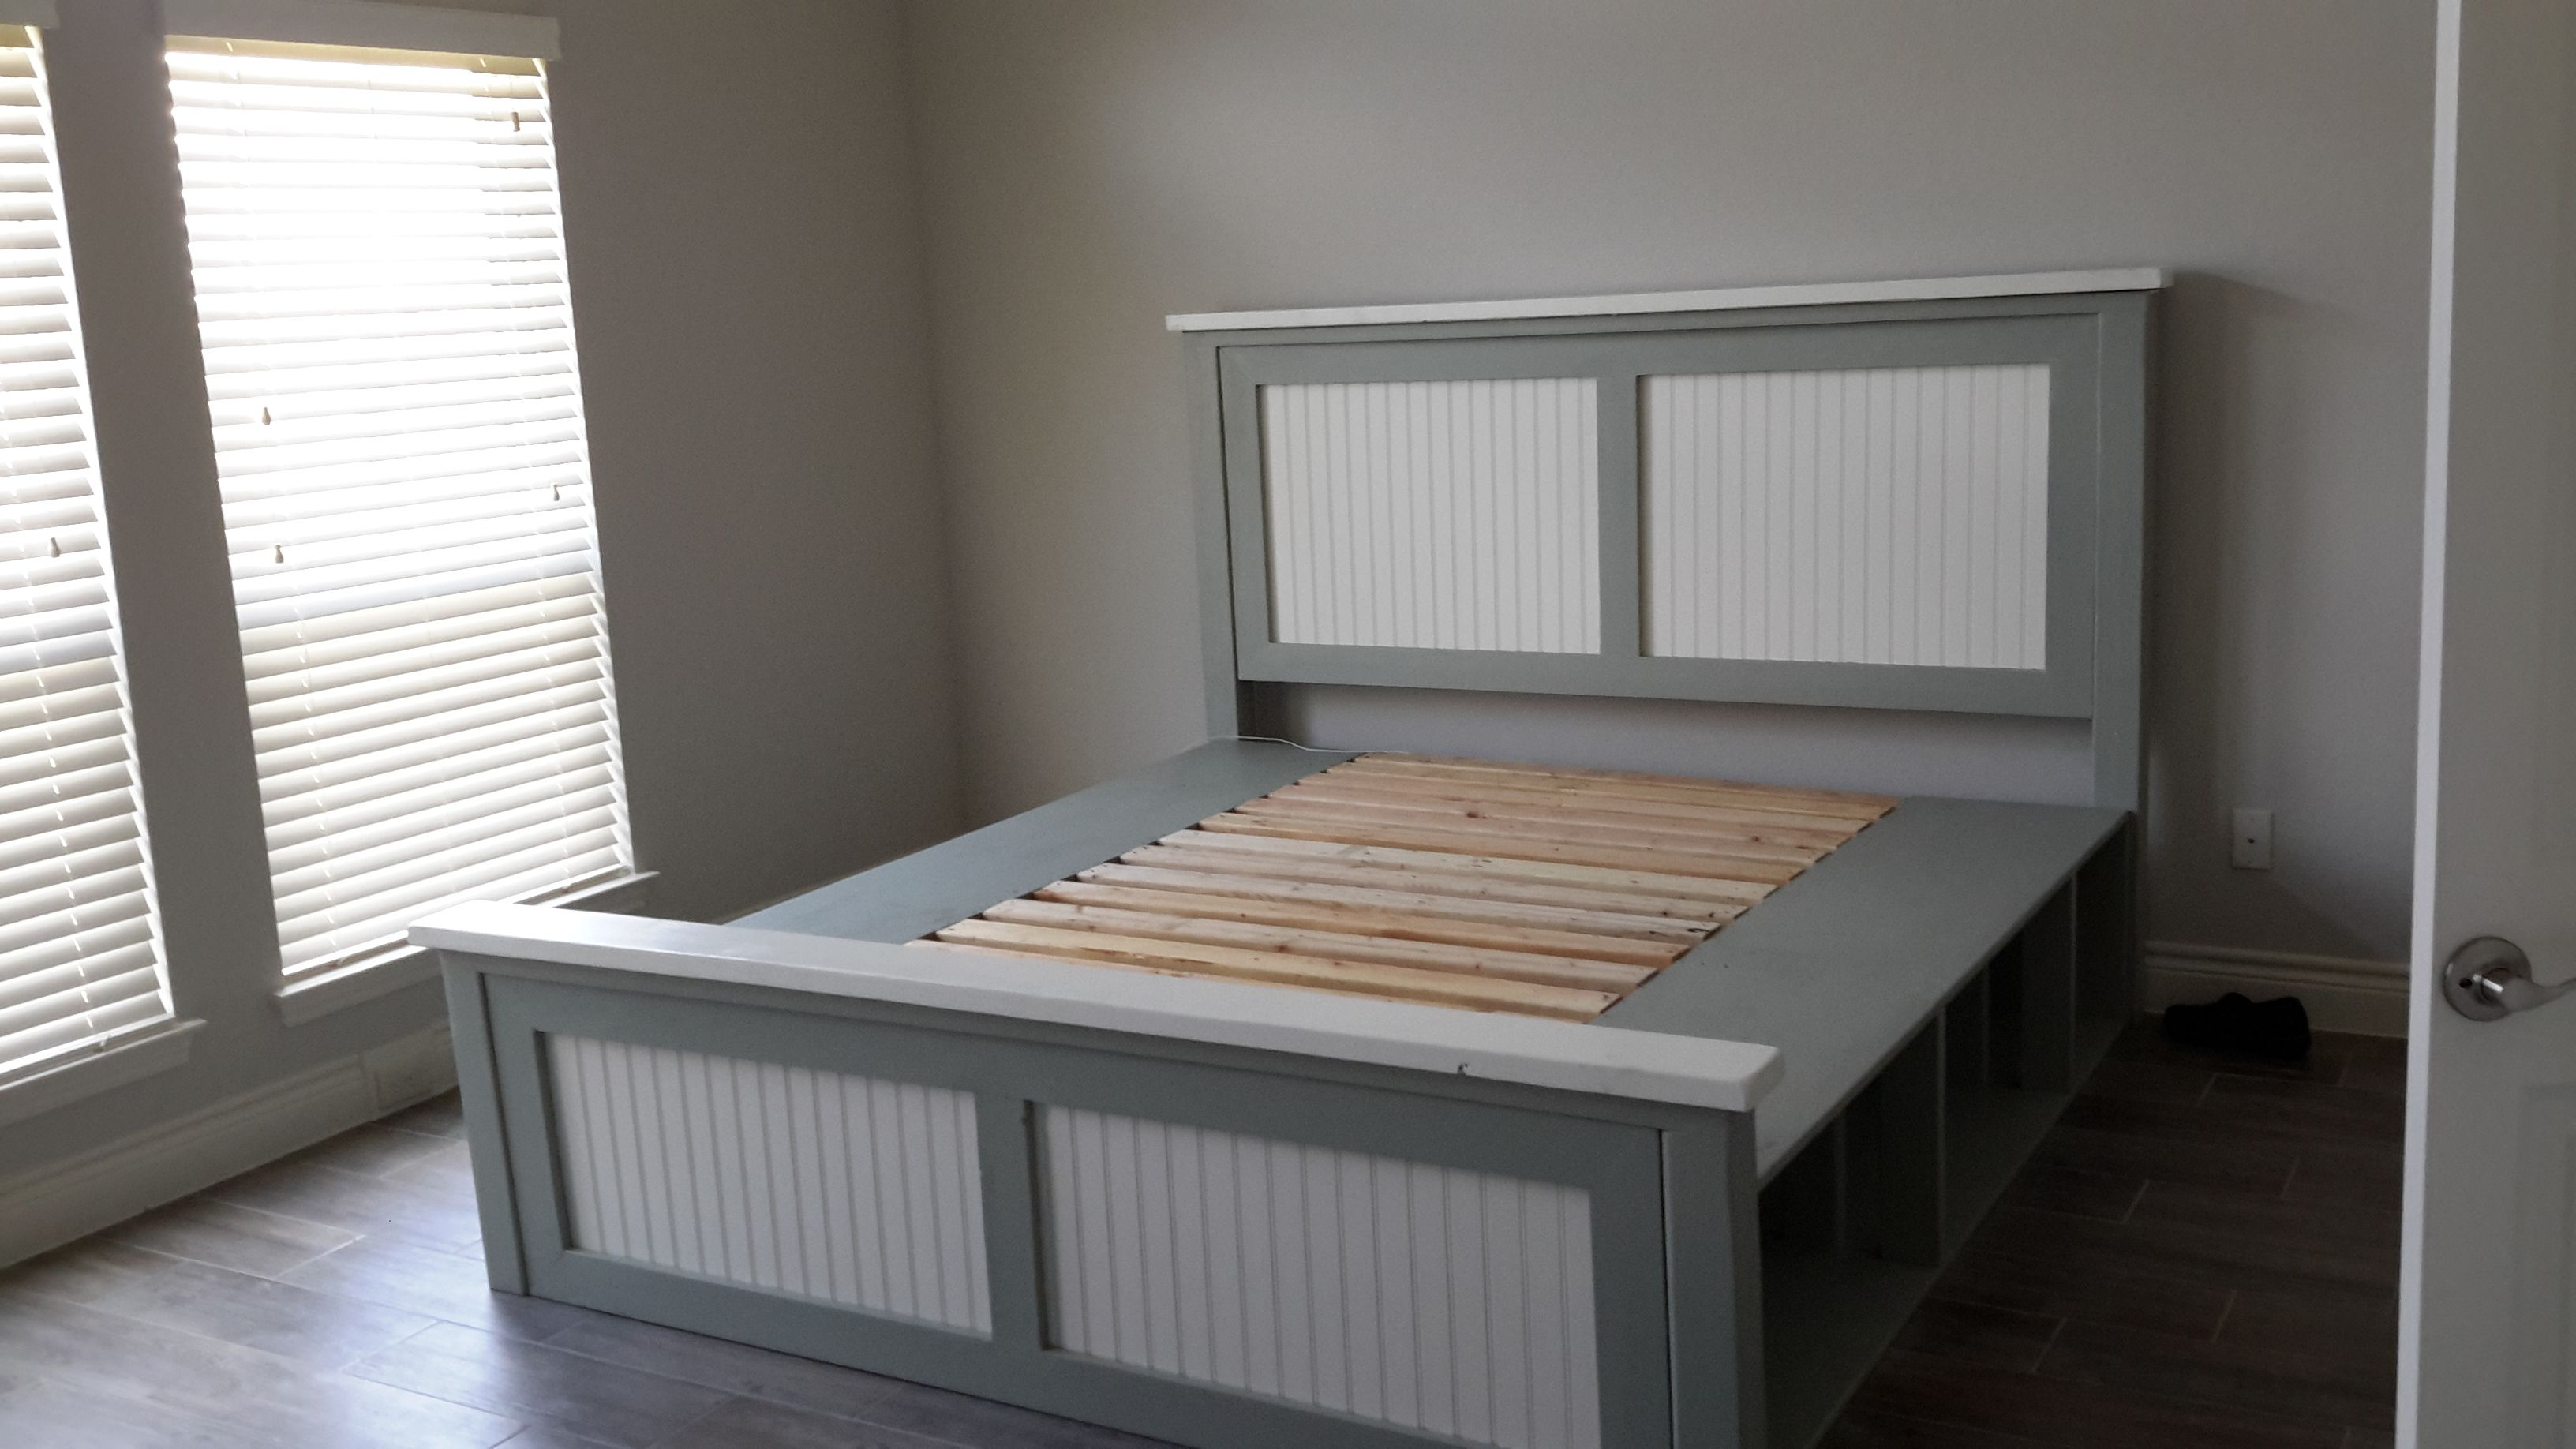 King farmhouse storage bed do it yourself home projects from ana king farmhouse storage bed do it yourself home projects from ana white solutioingenieria Gallery